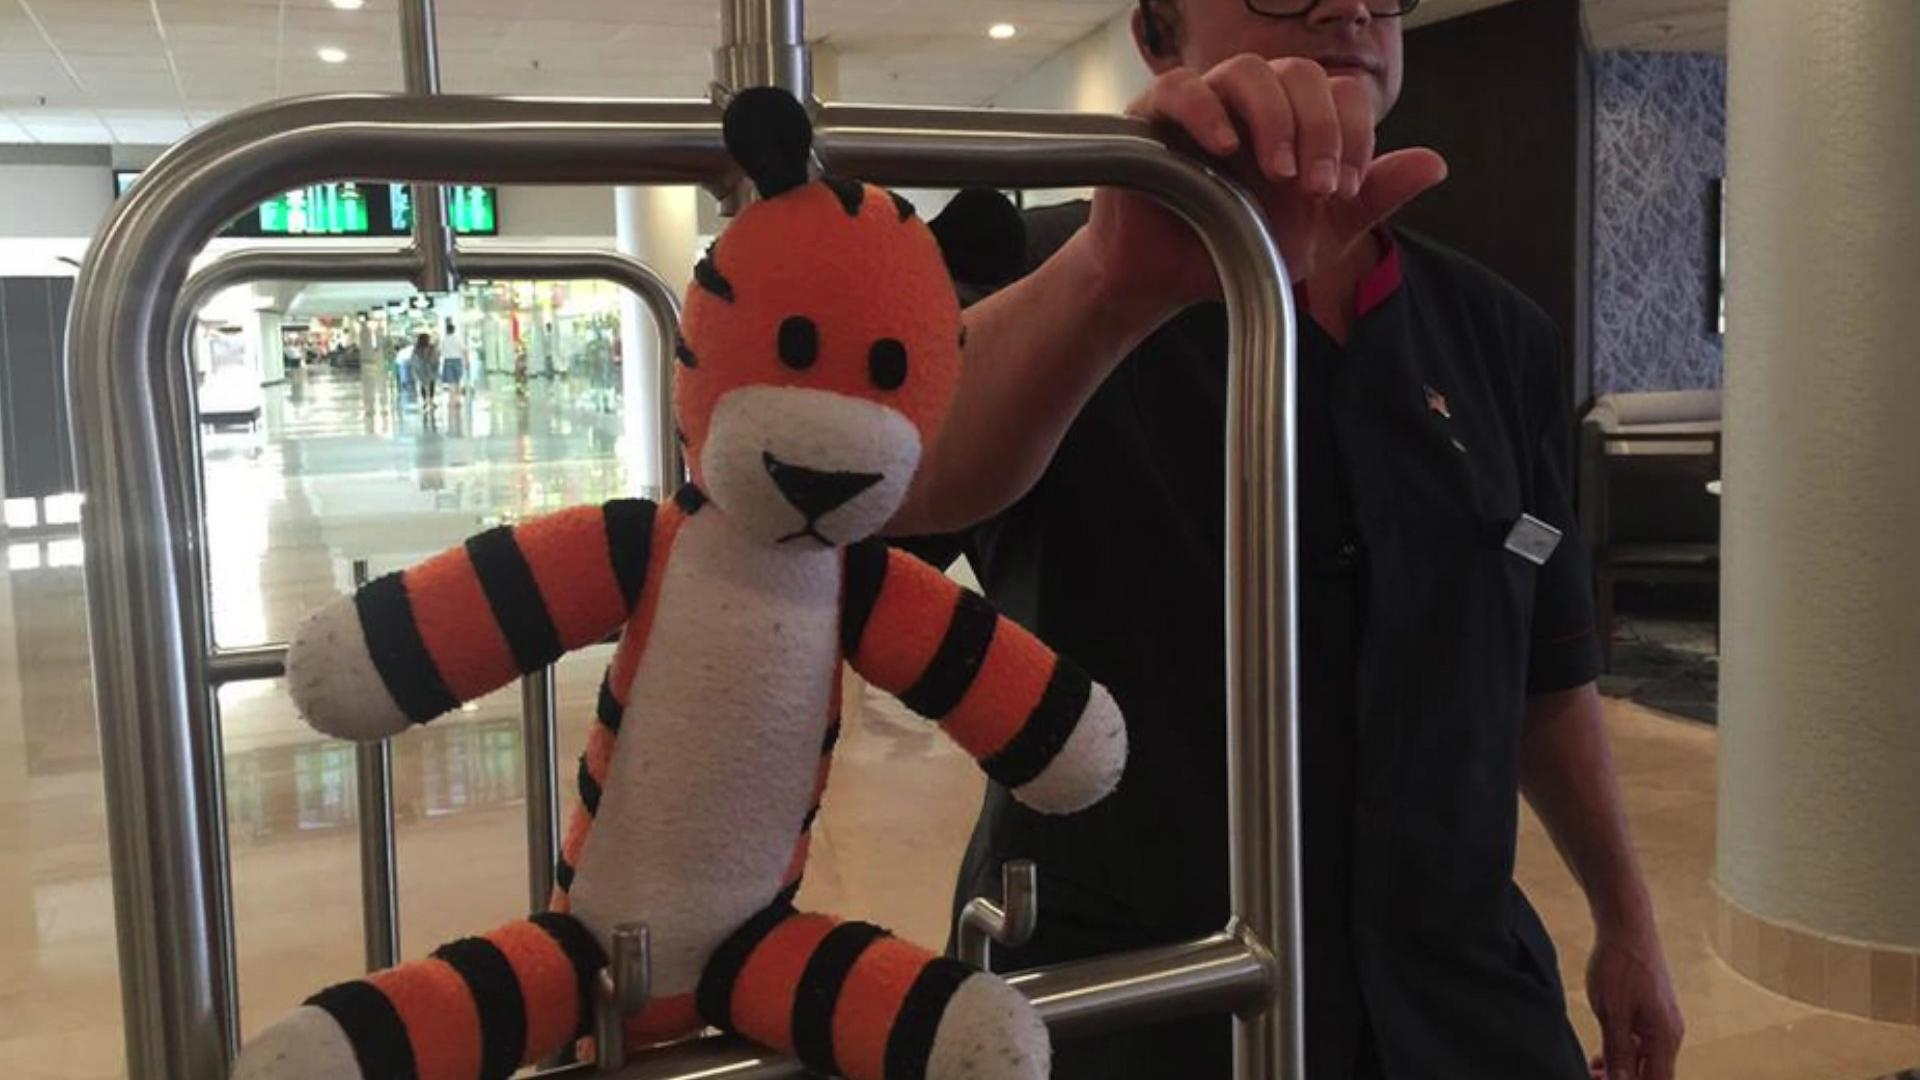 Airport workers chronicle adventures of boy's lost stuffed tiger